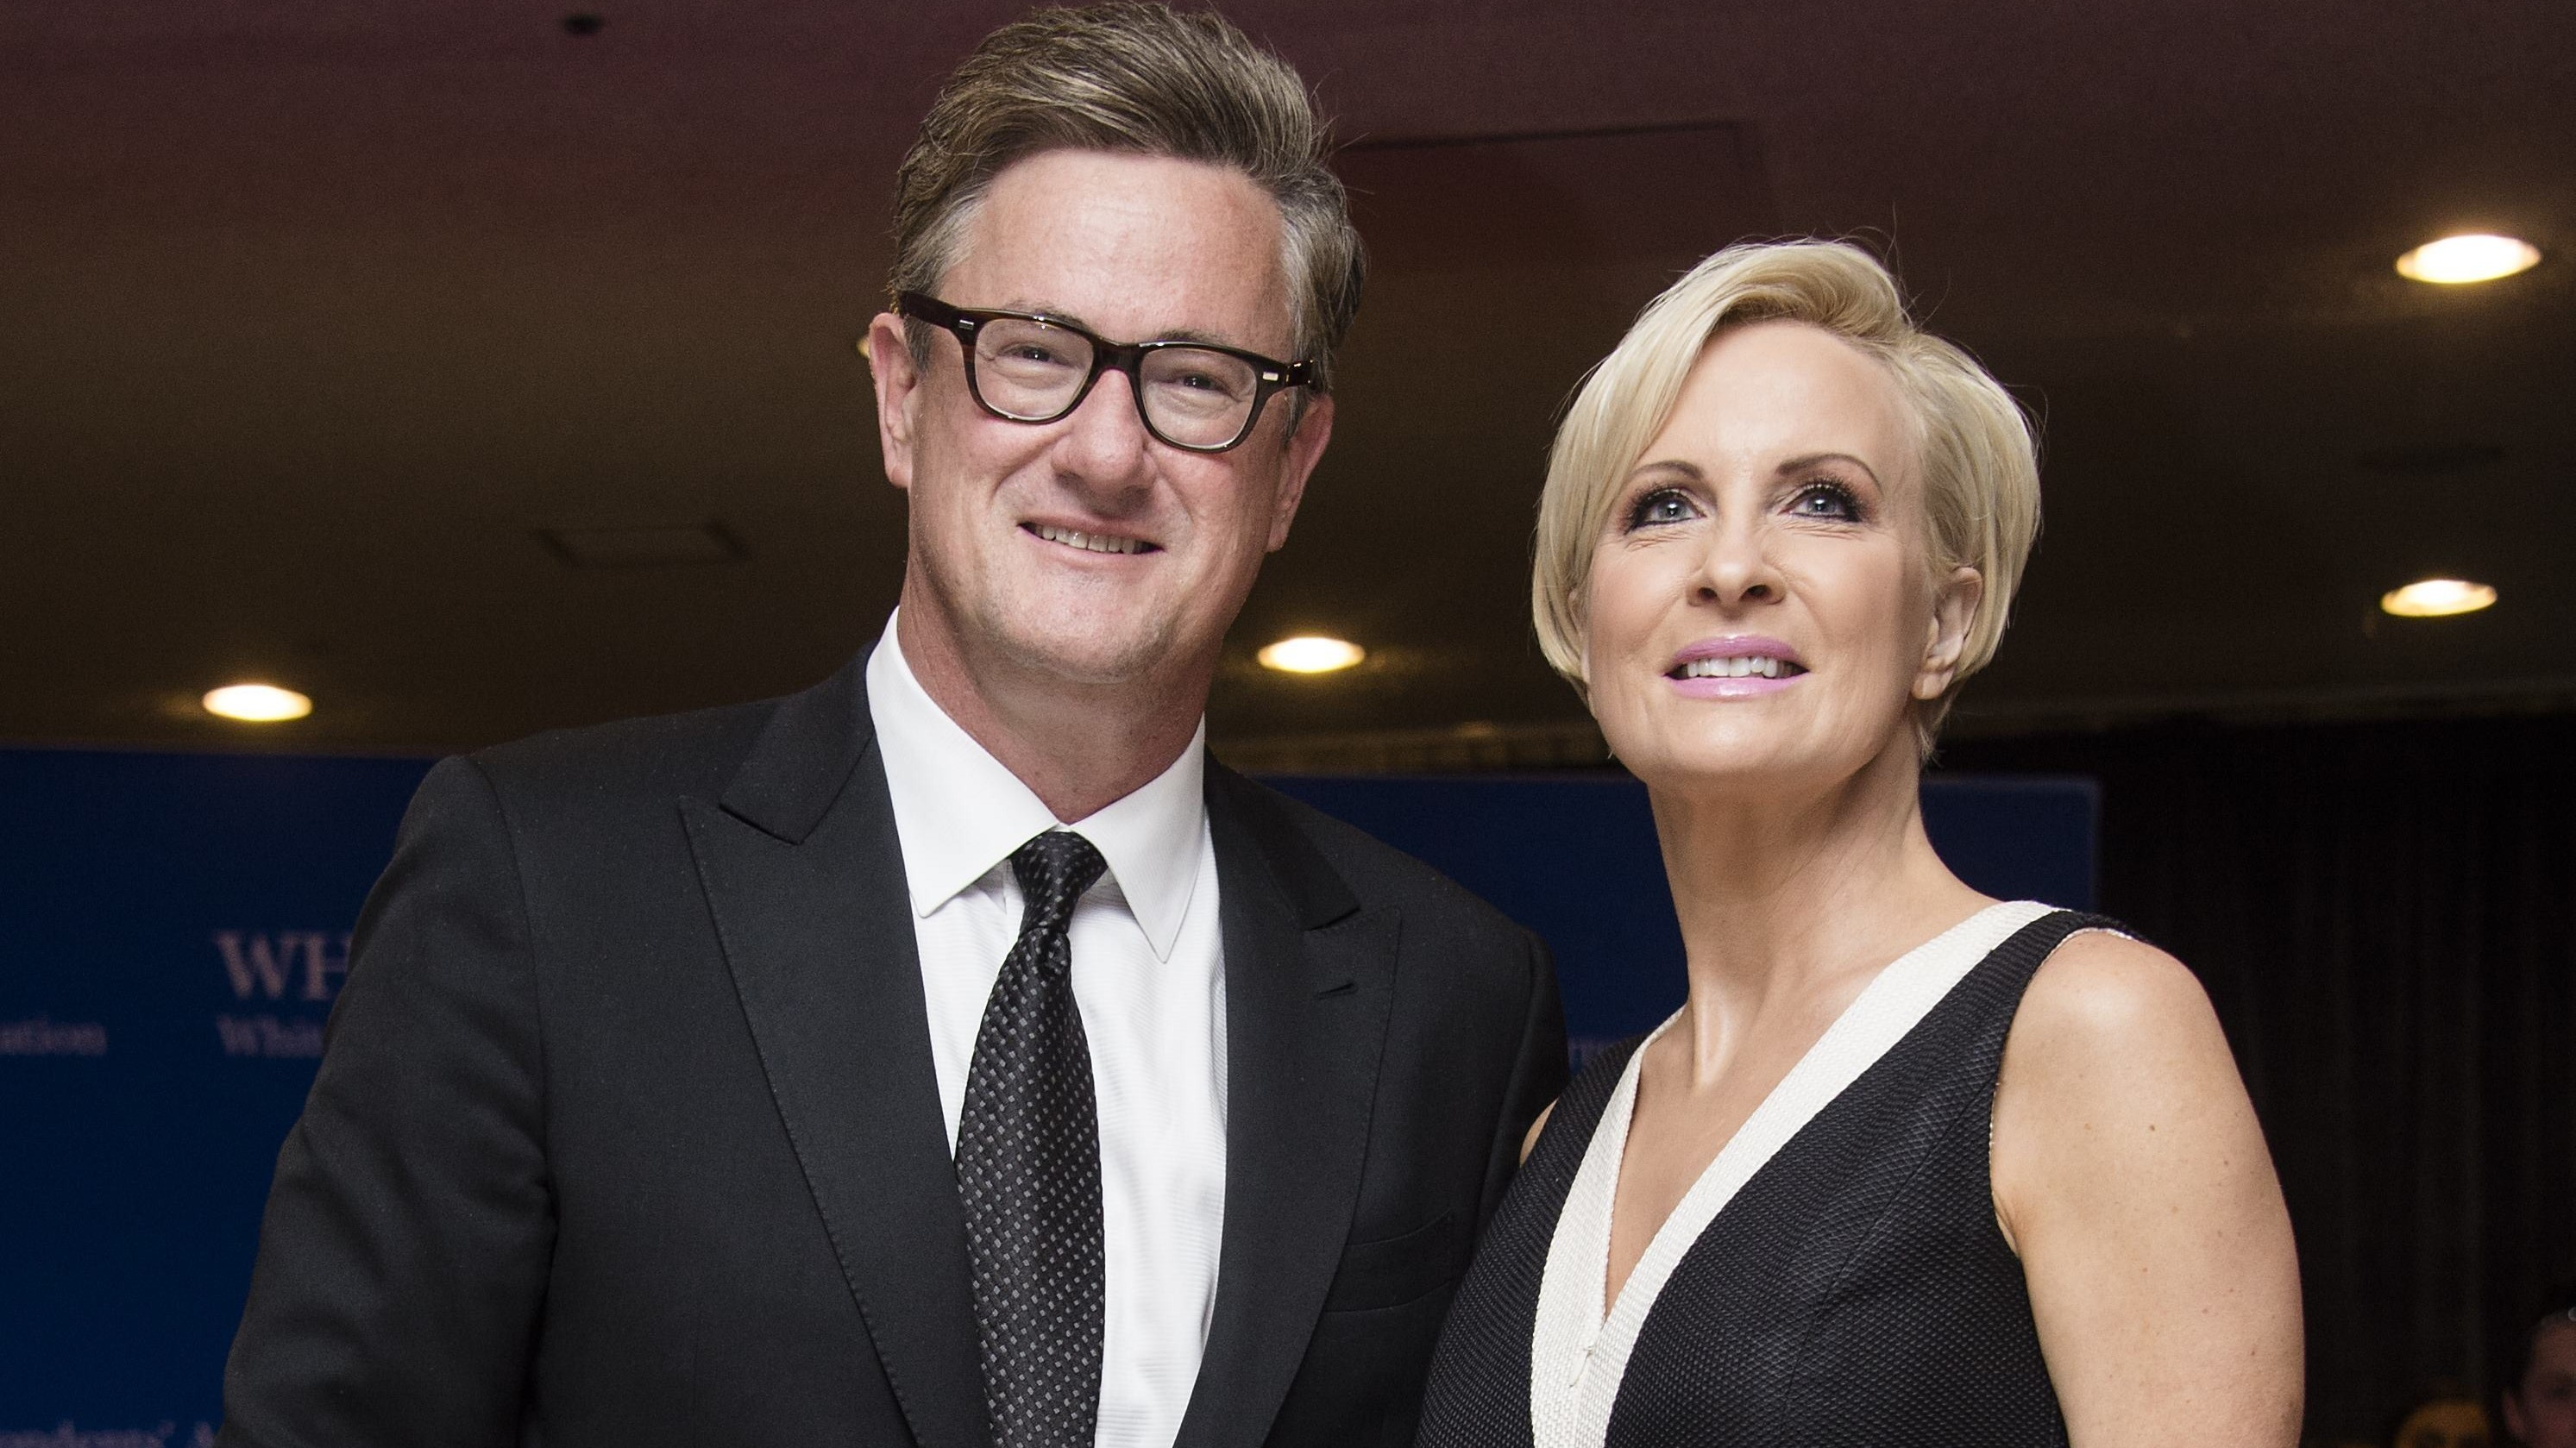 'Morning Joe' personality challenges Trump to a fight